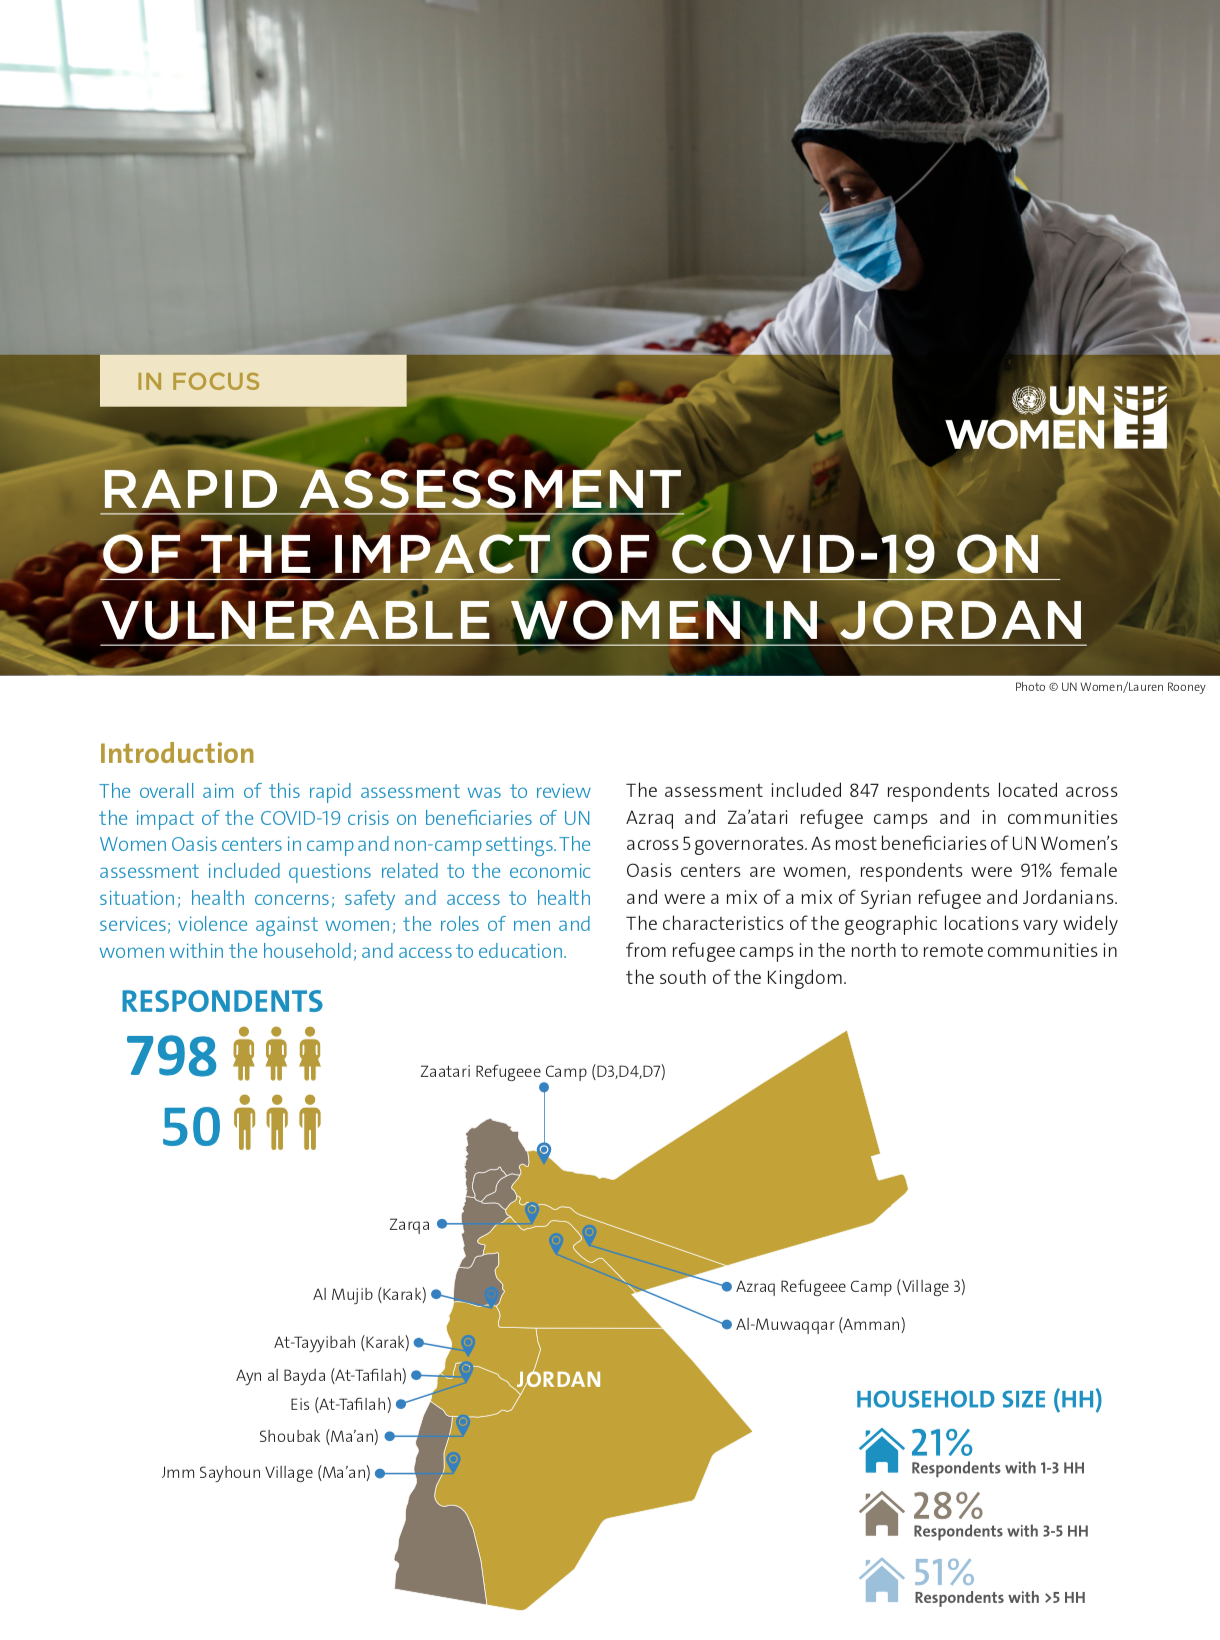 RAPID ASSESSMENT OF THE IMPACT OF COVID-19 ON VULNERABLE WOMEN IN JORDAN/ UN Women